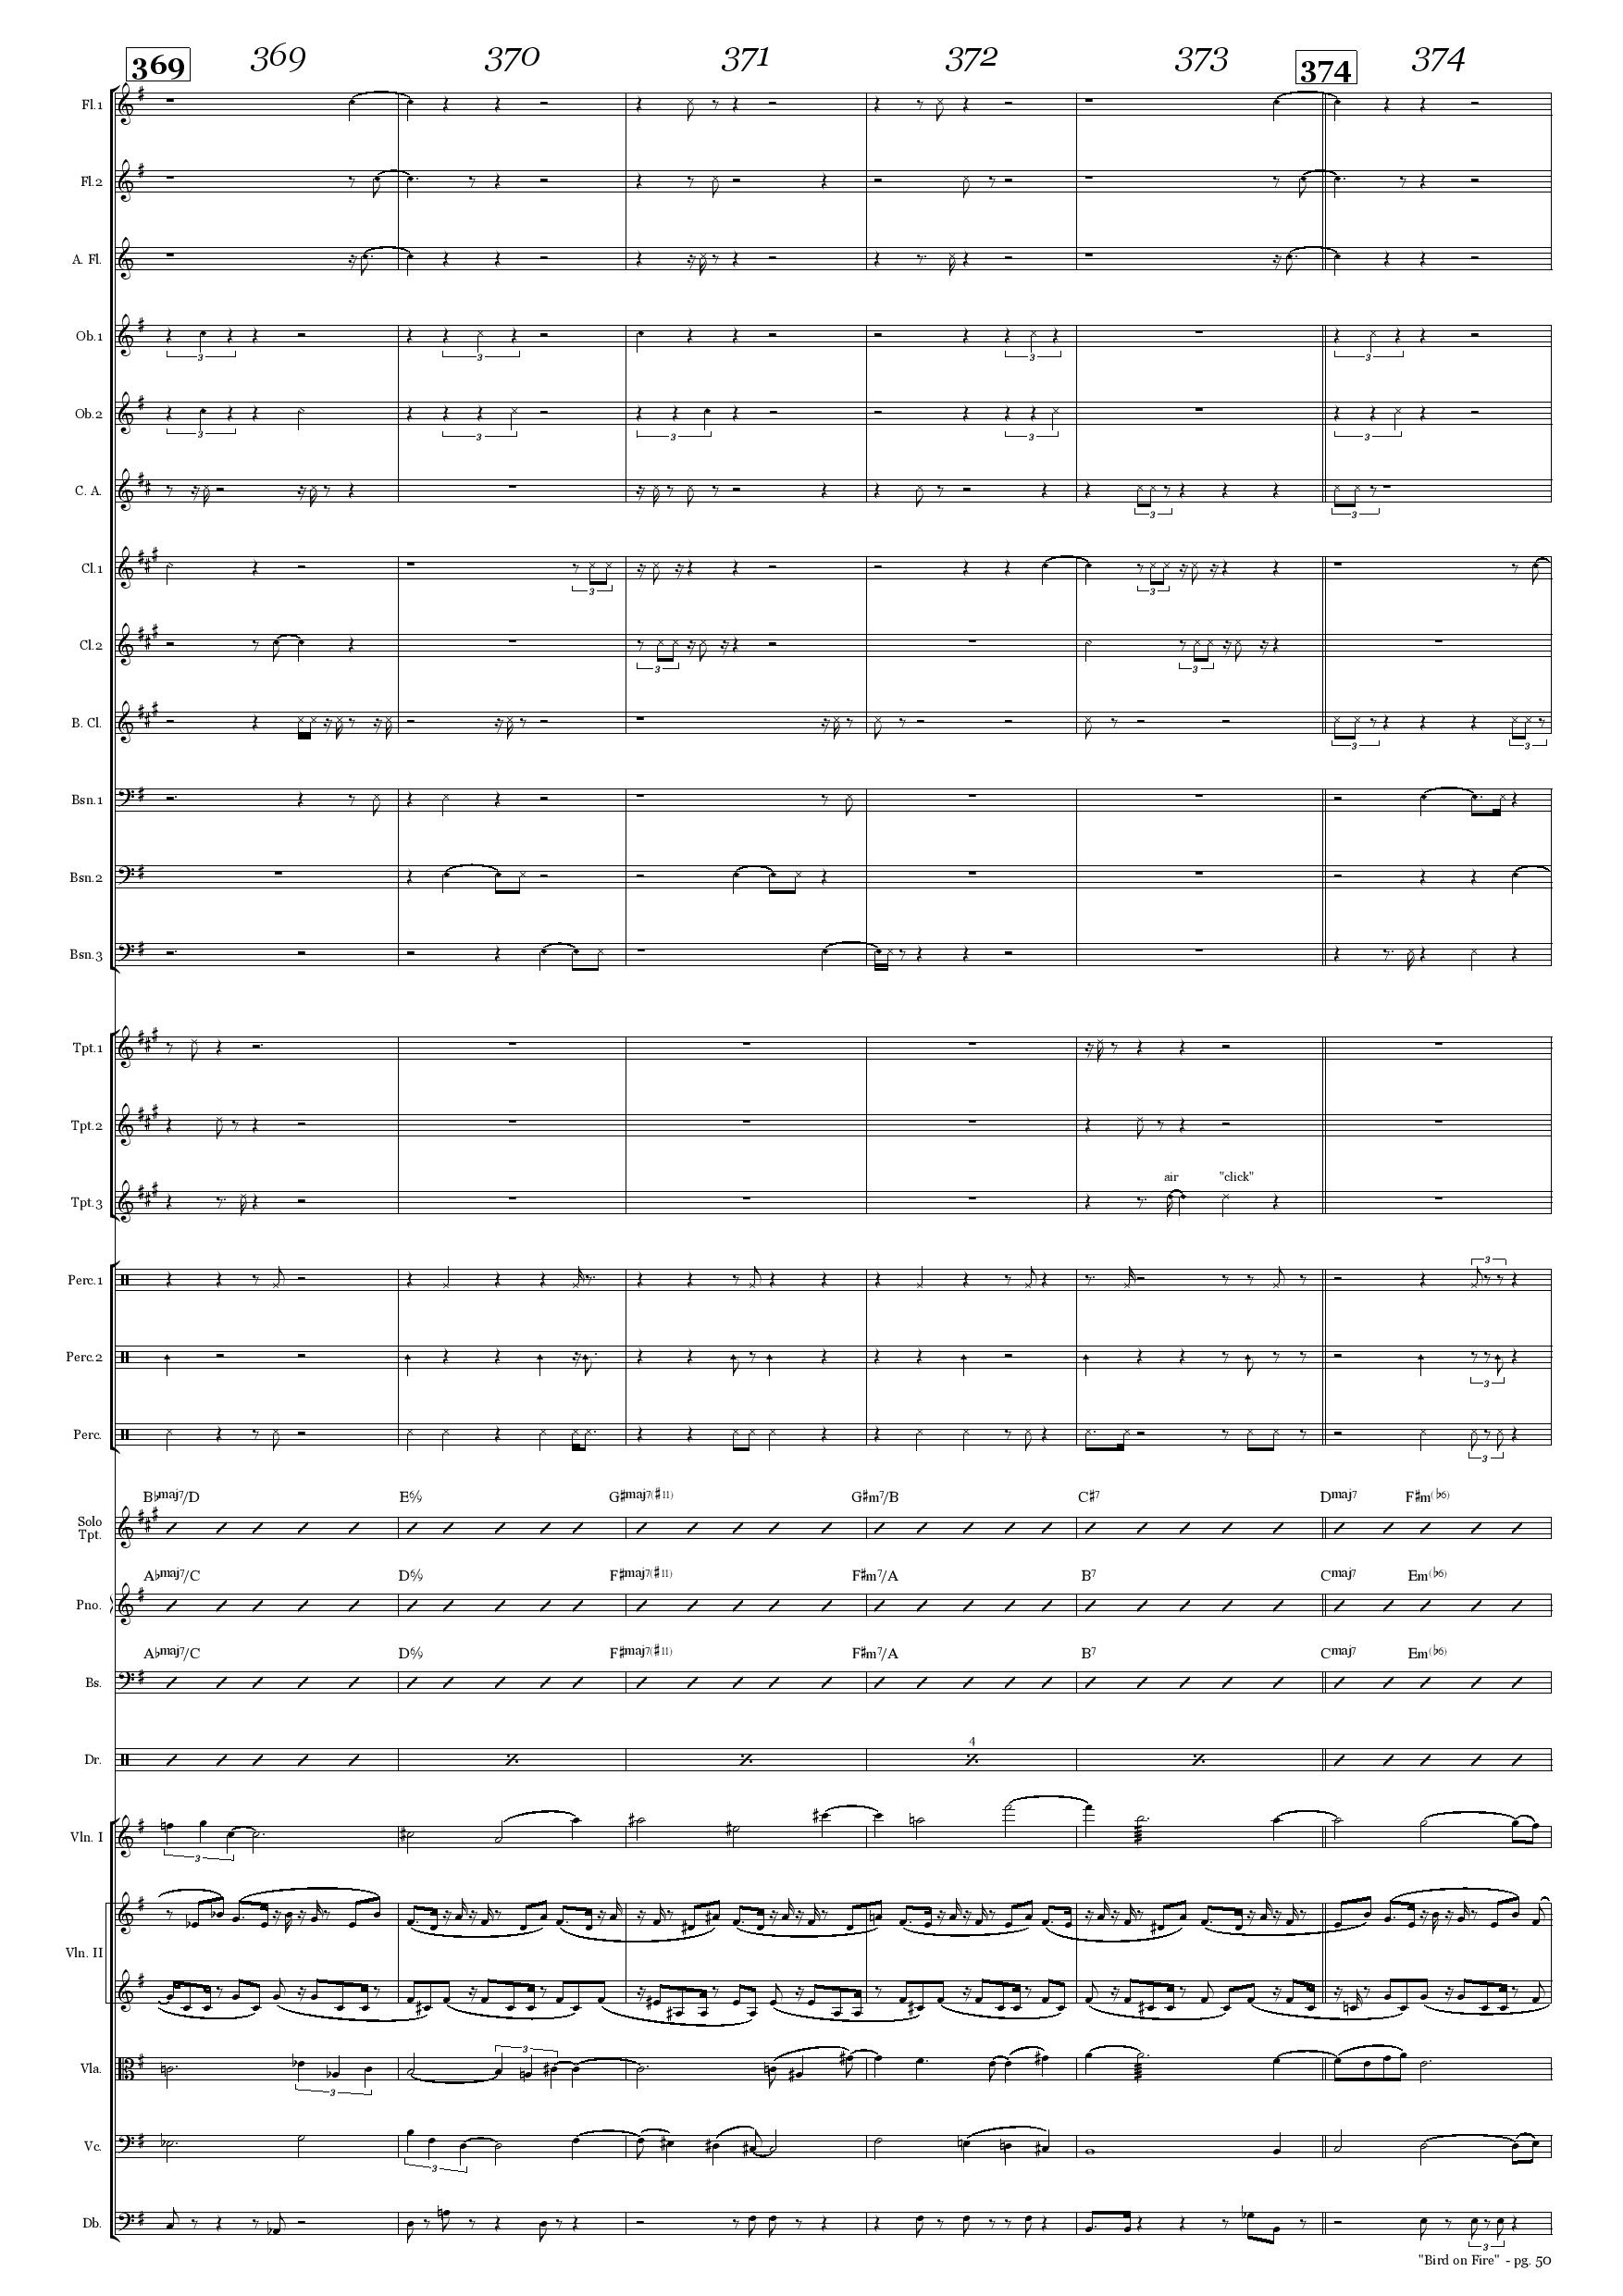 Bird on Fire - score-page-053.jpg